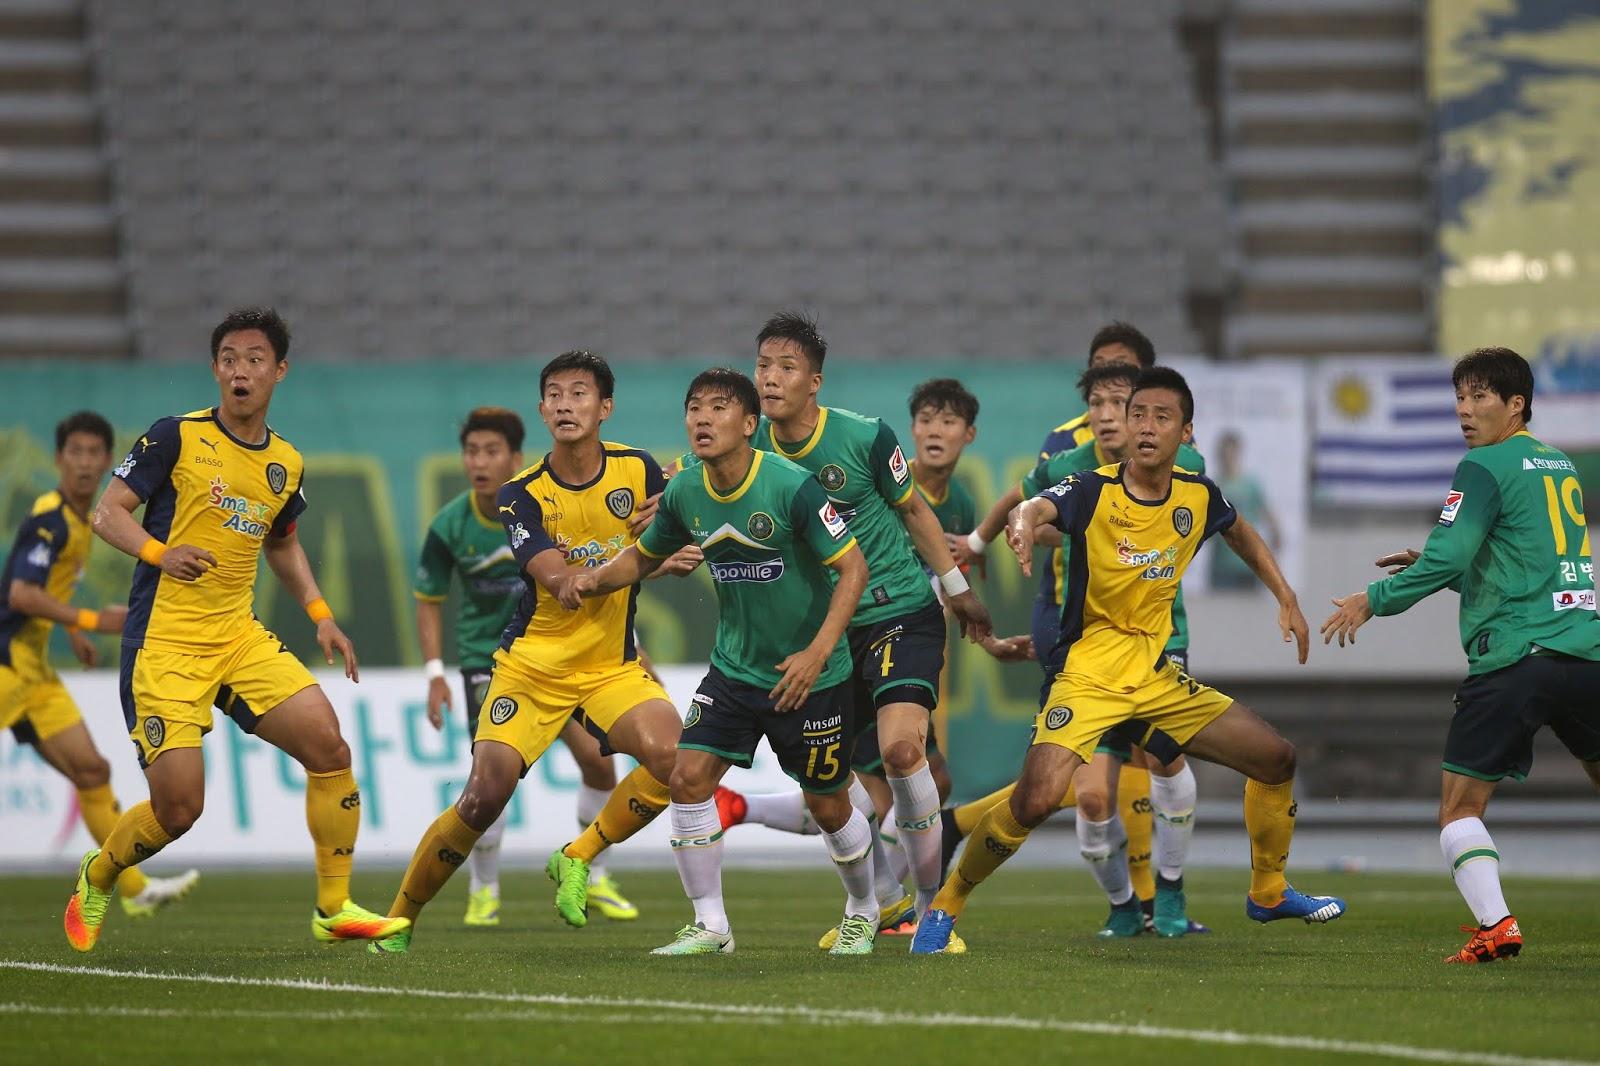 K League 2 Preview: Ansan Greenrs vs Asan Mugunghwa